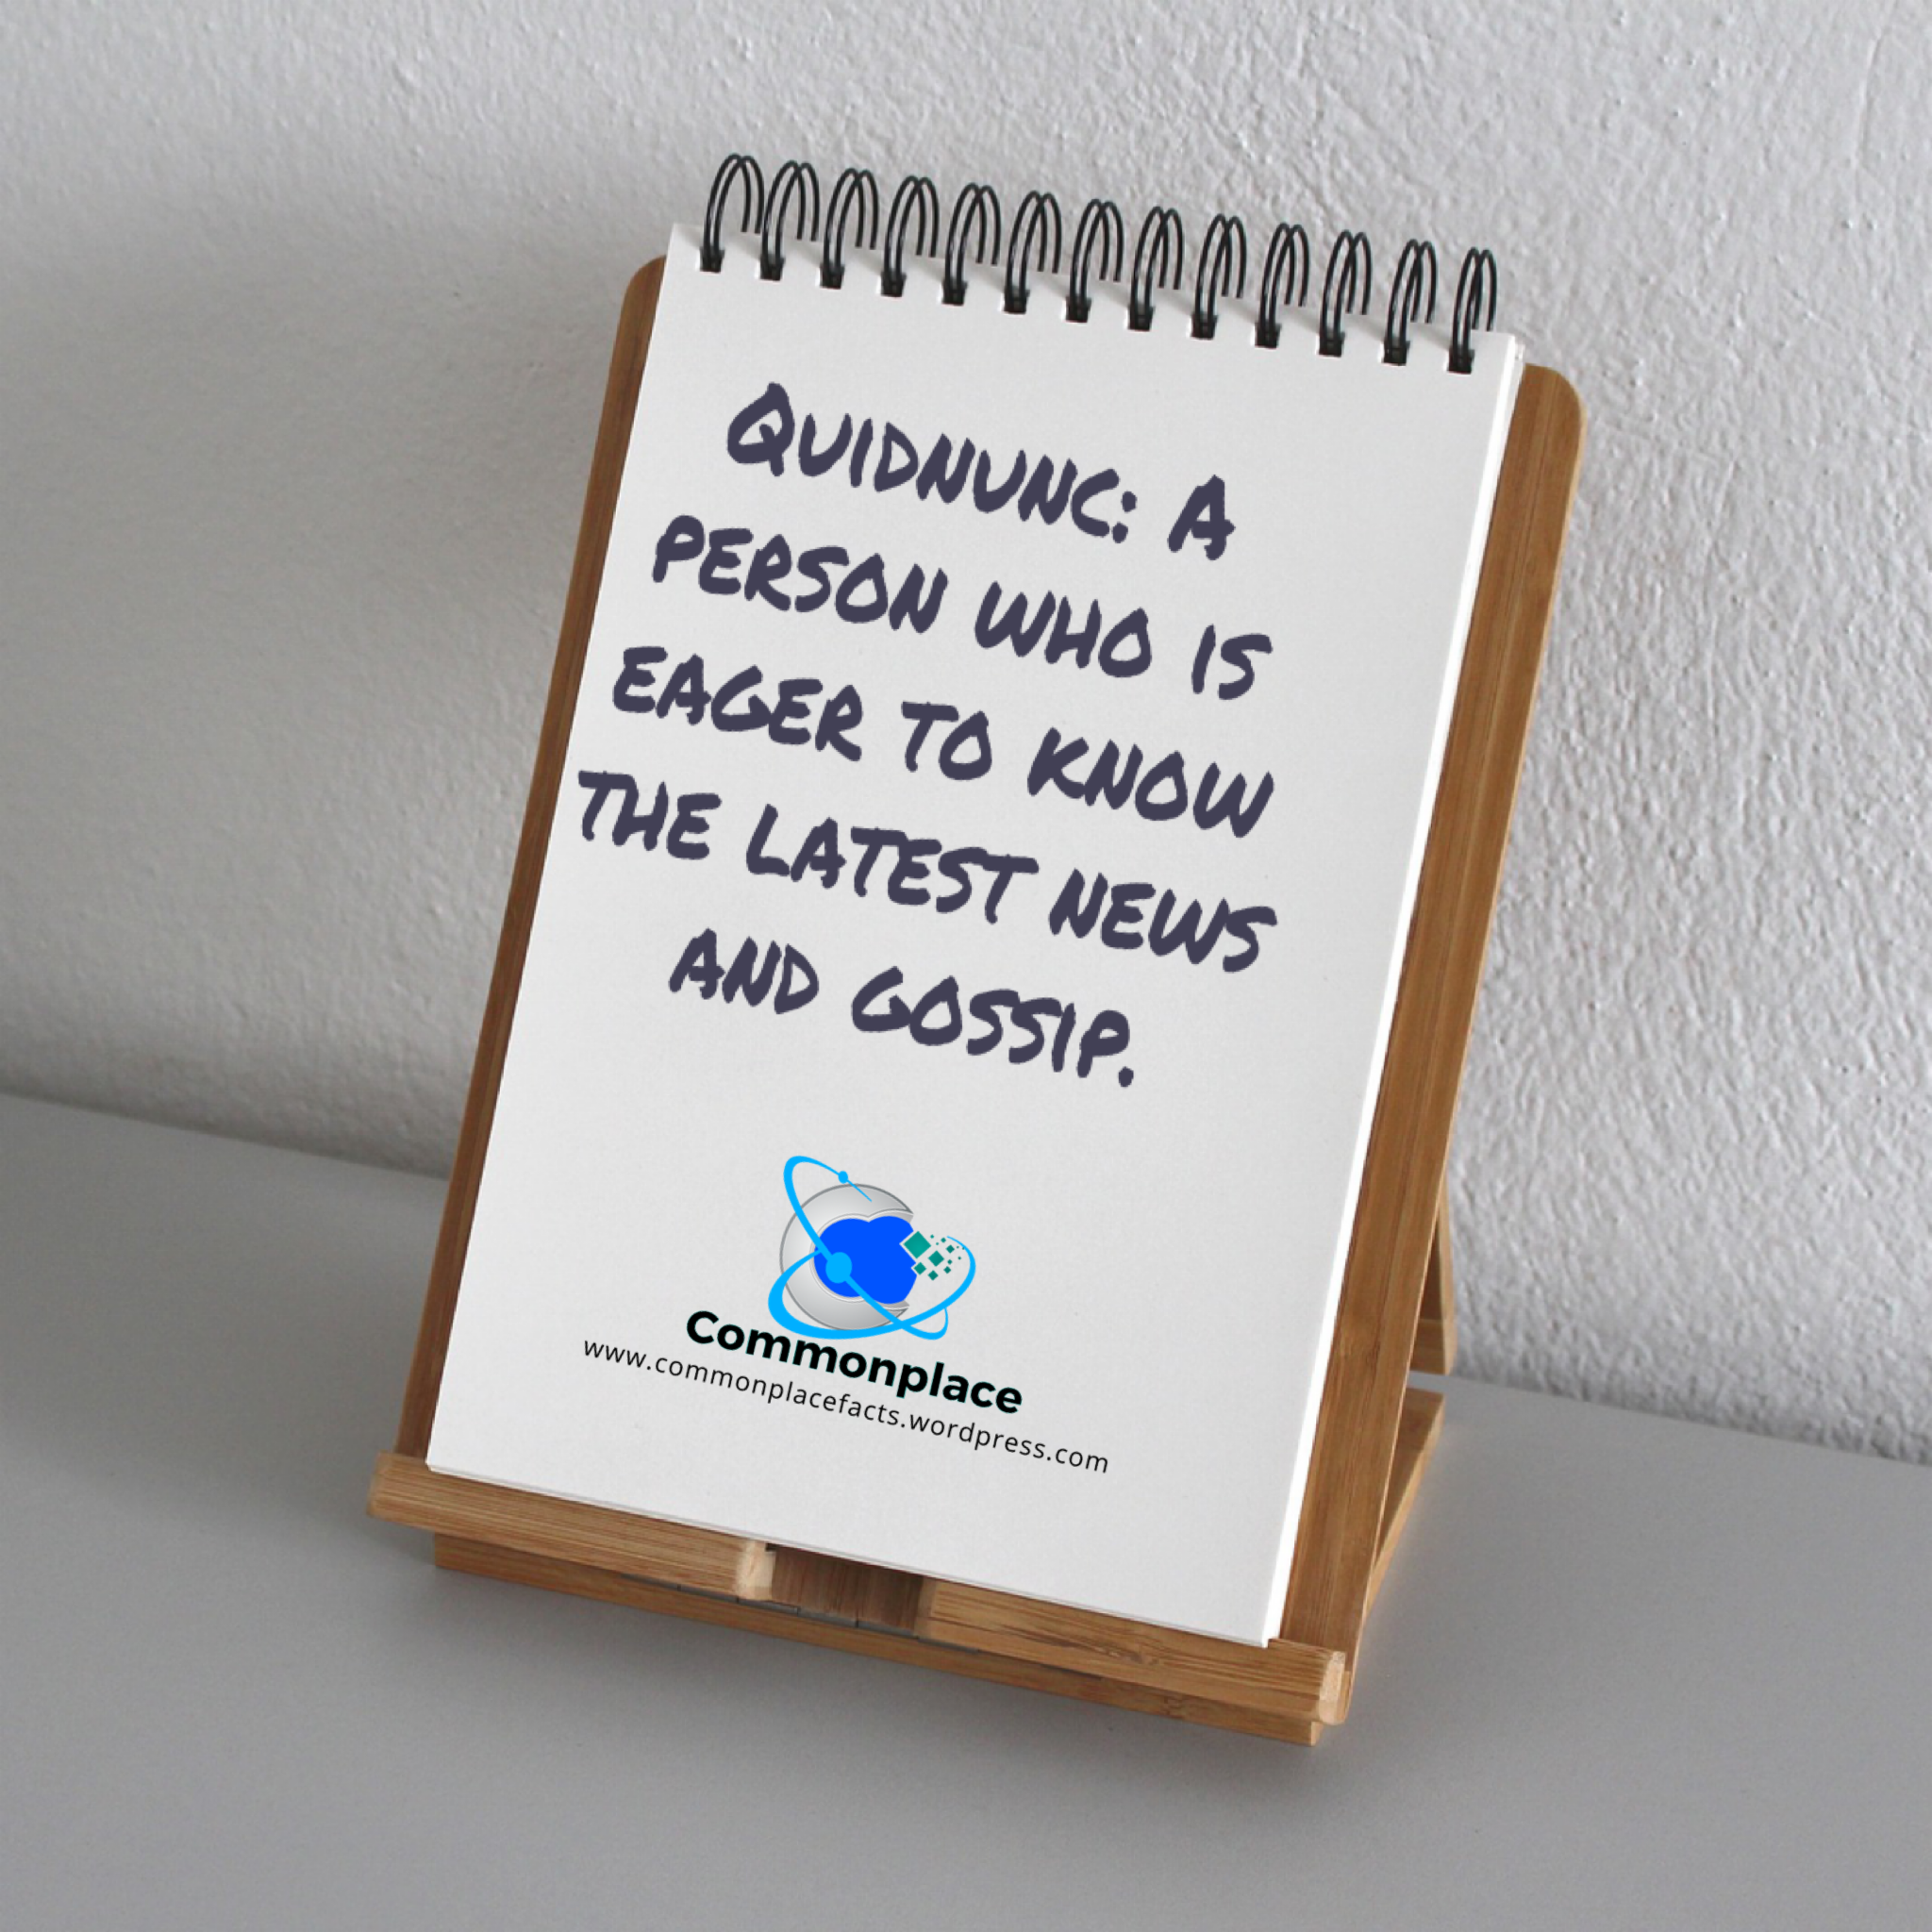 quidnunc: a person who delights in gossip — a busybody.